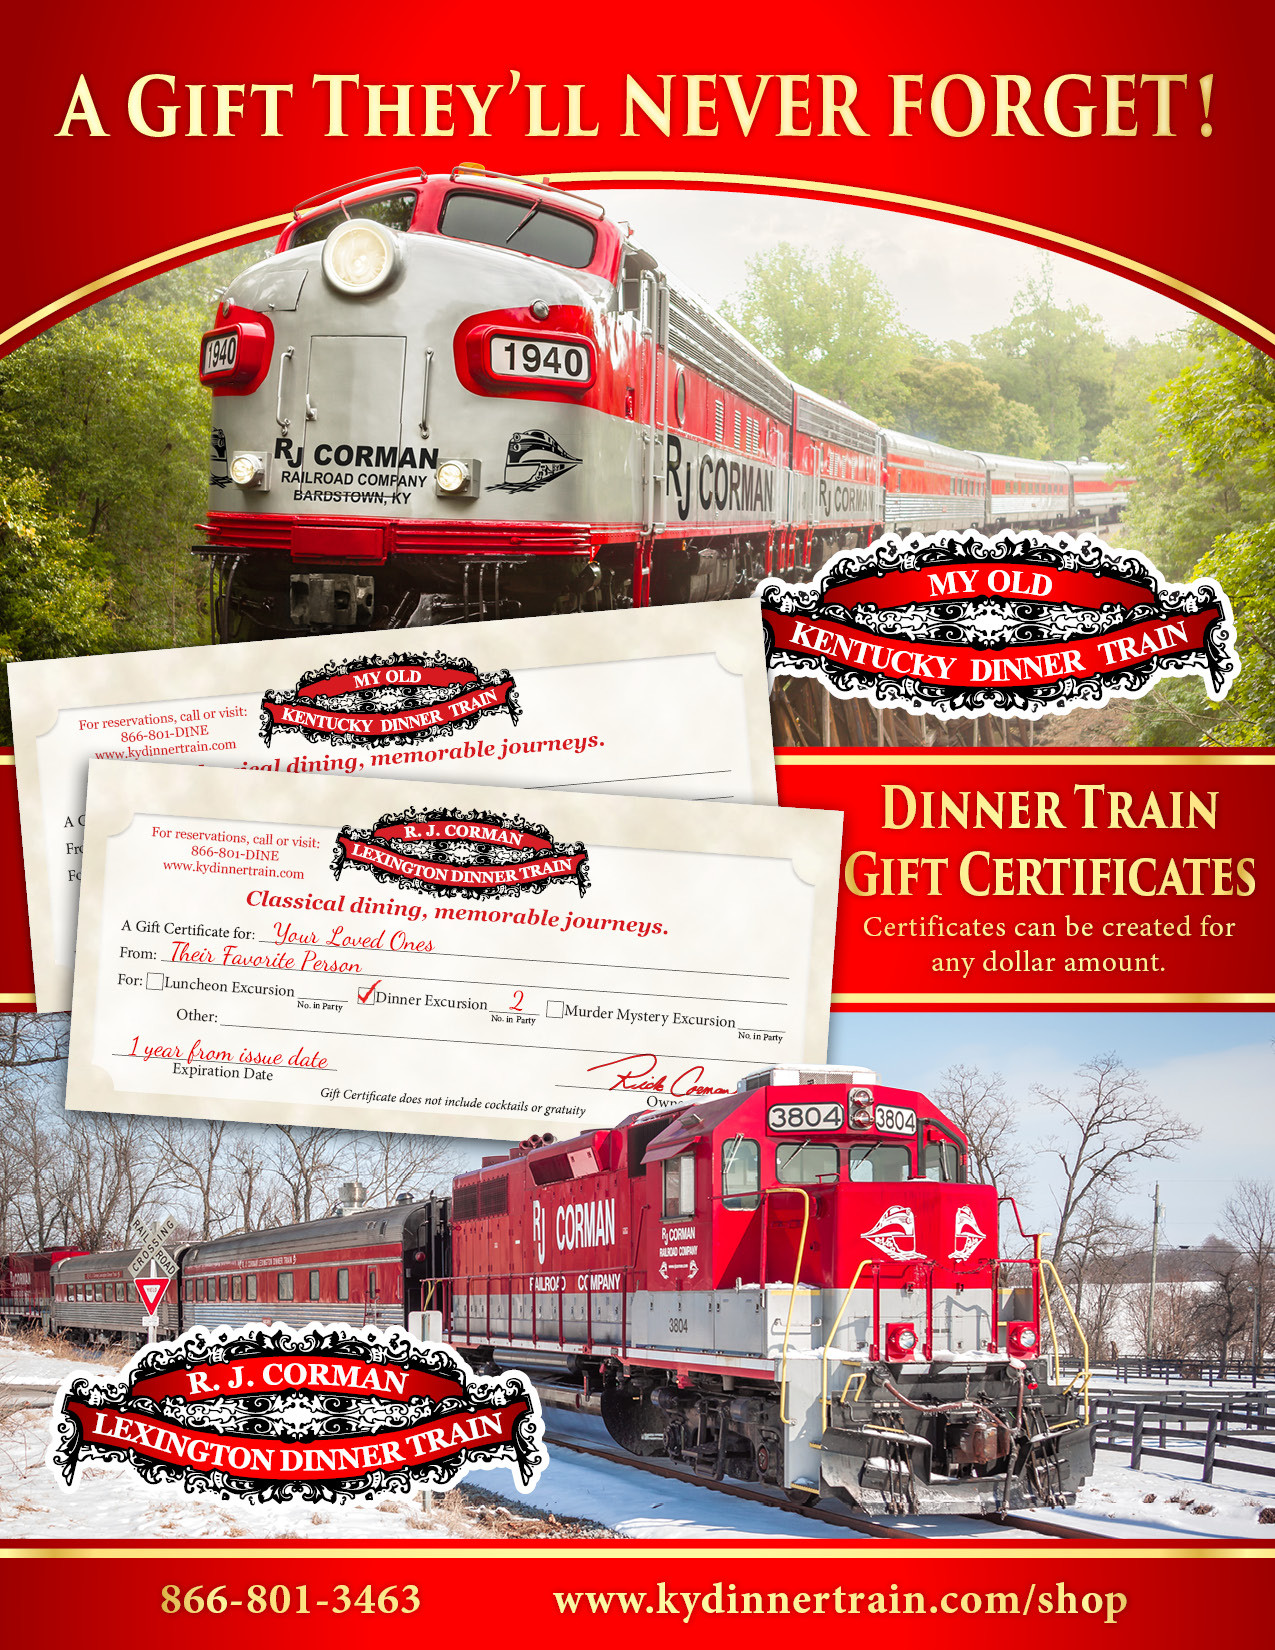 My Old Kentucky Dinner Train  My Old Kentucky Dinner Train Specials